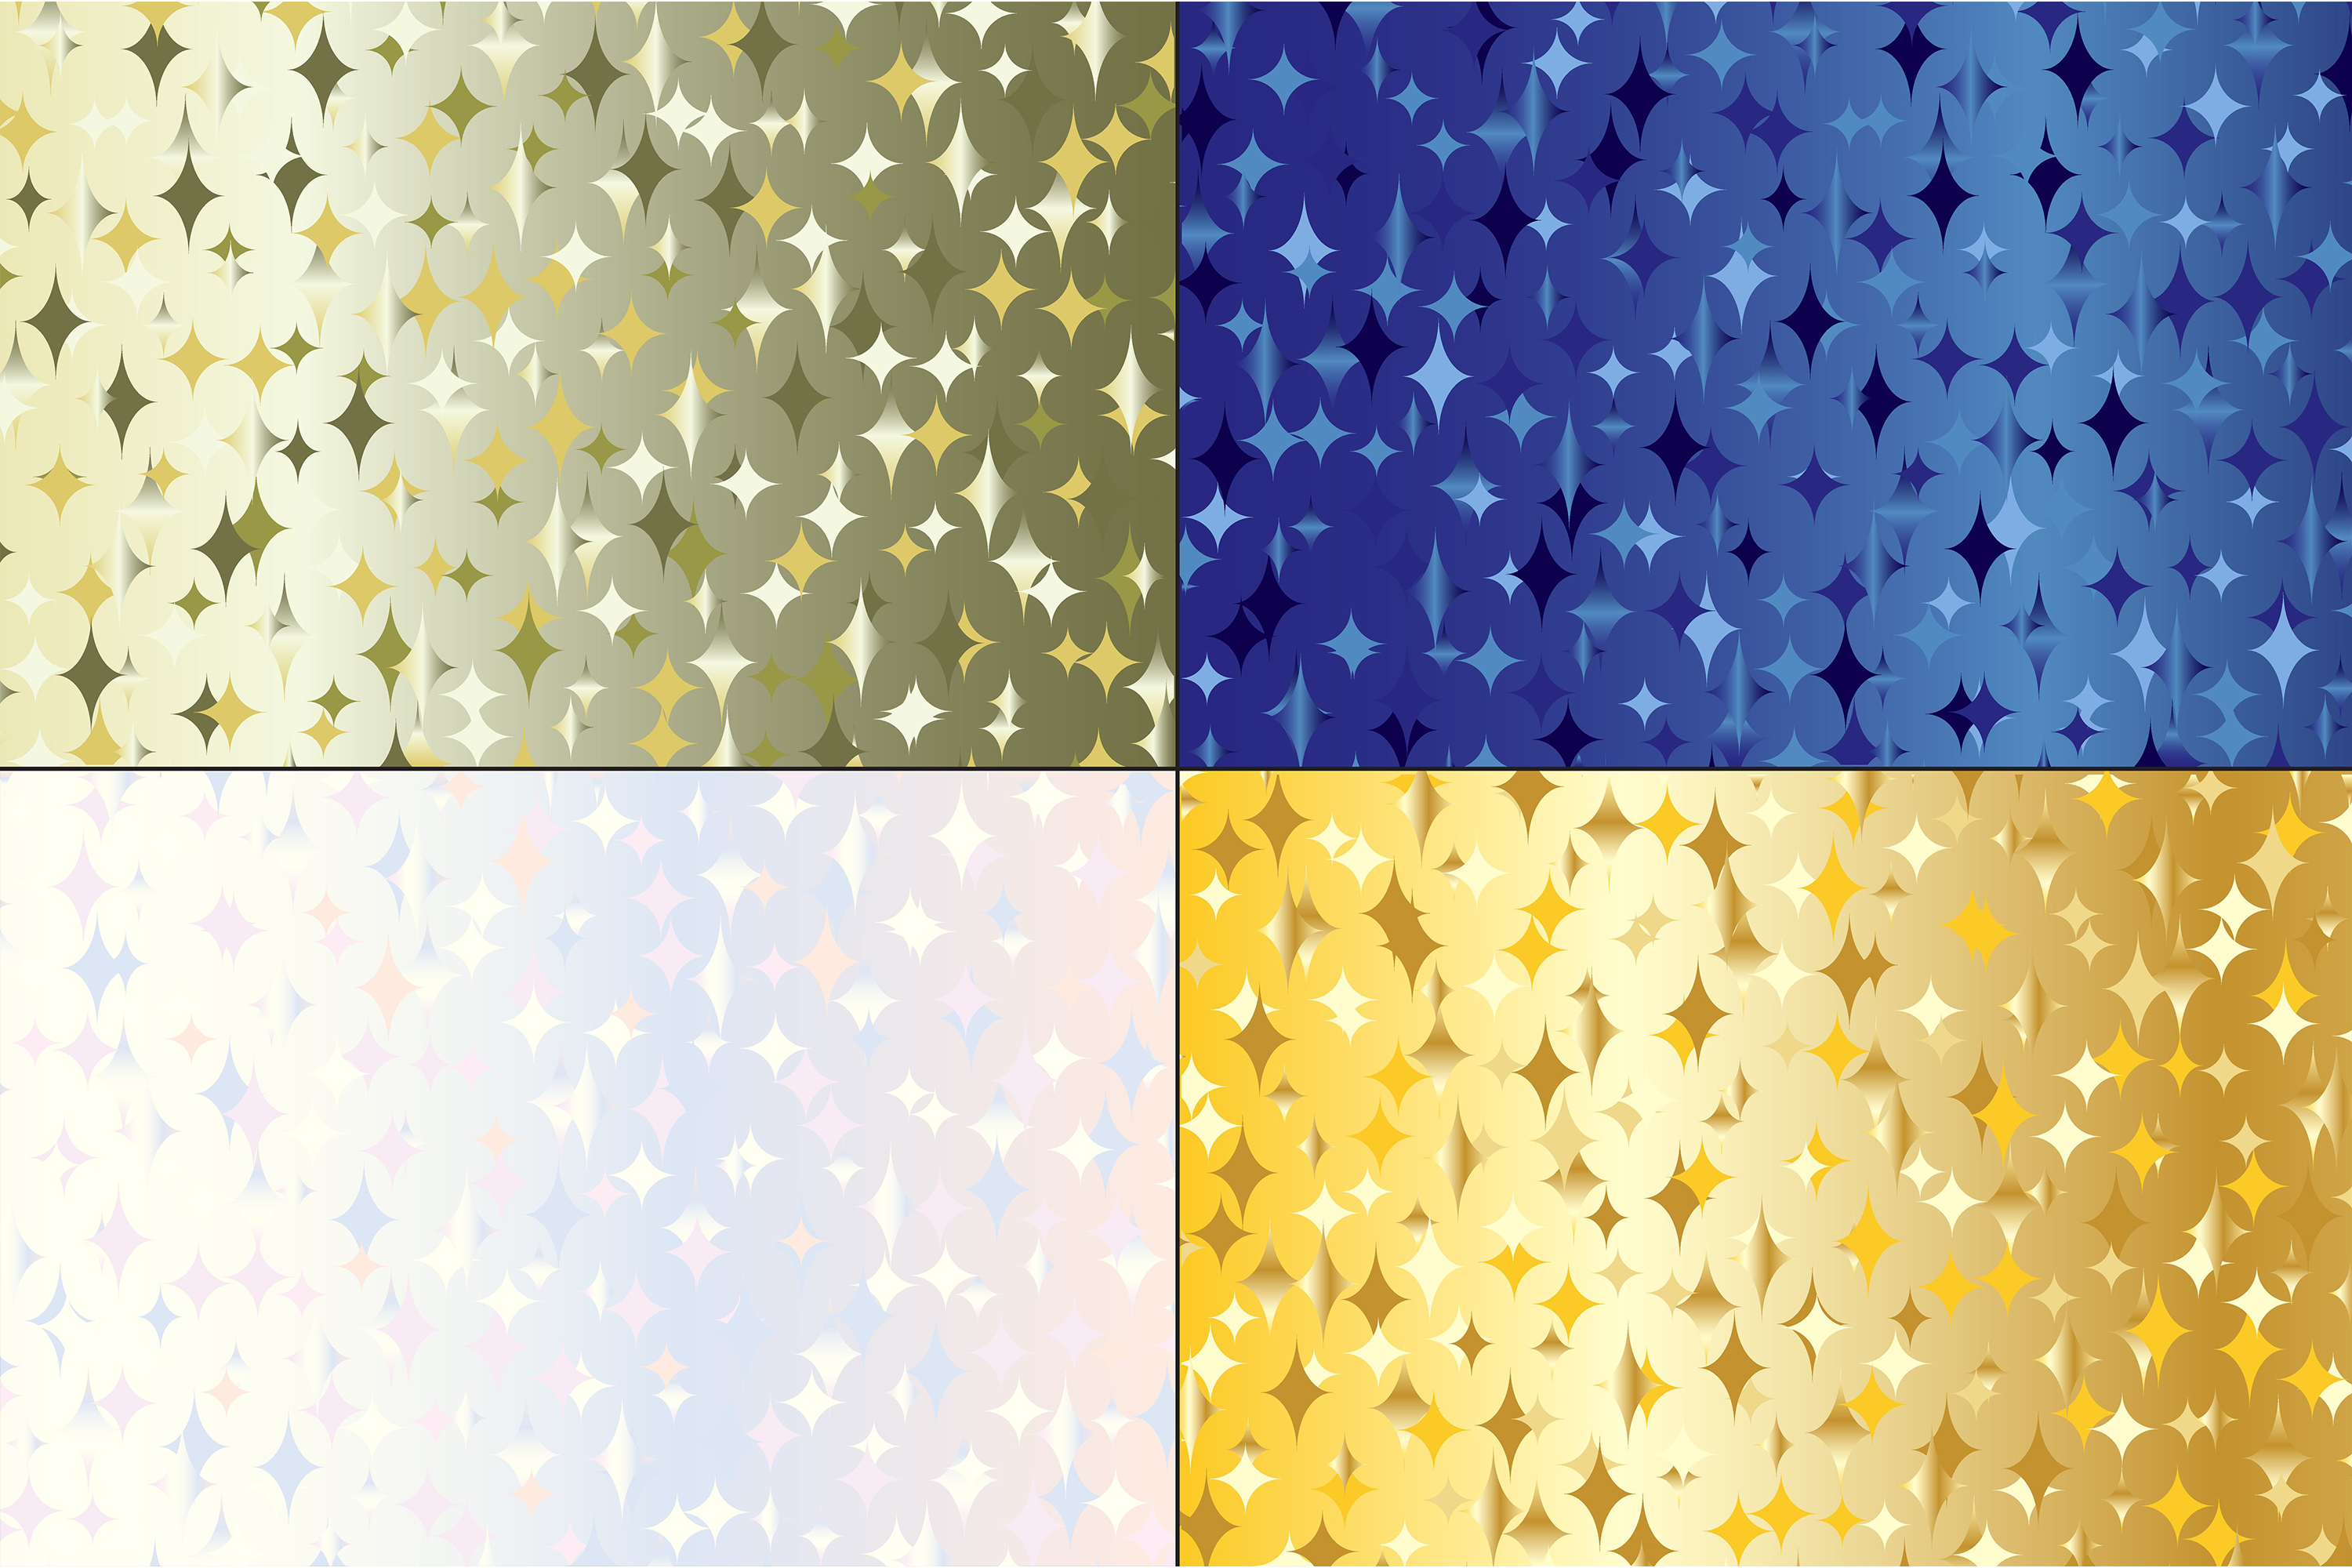 Sparkle Gradient Backgrounds example image 2